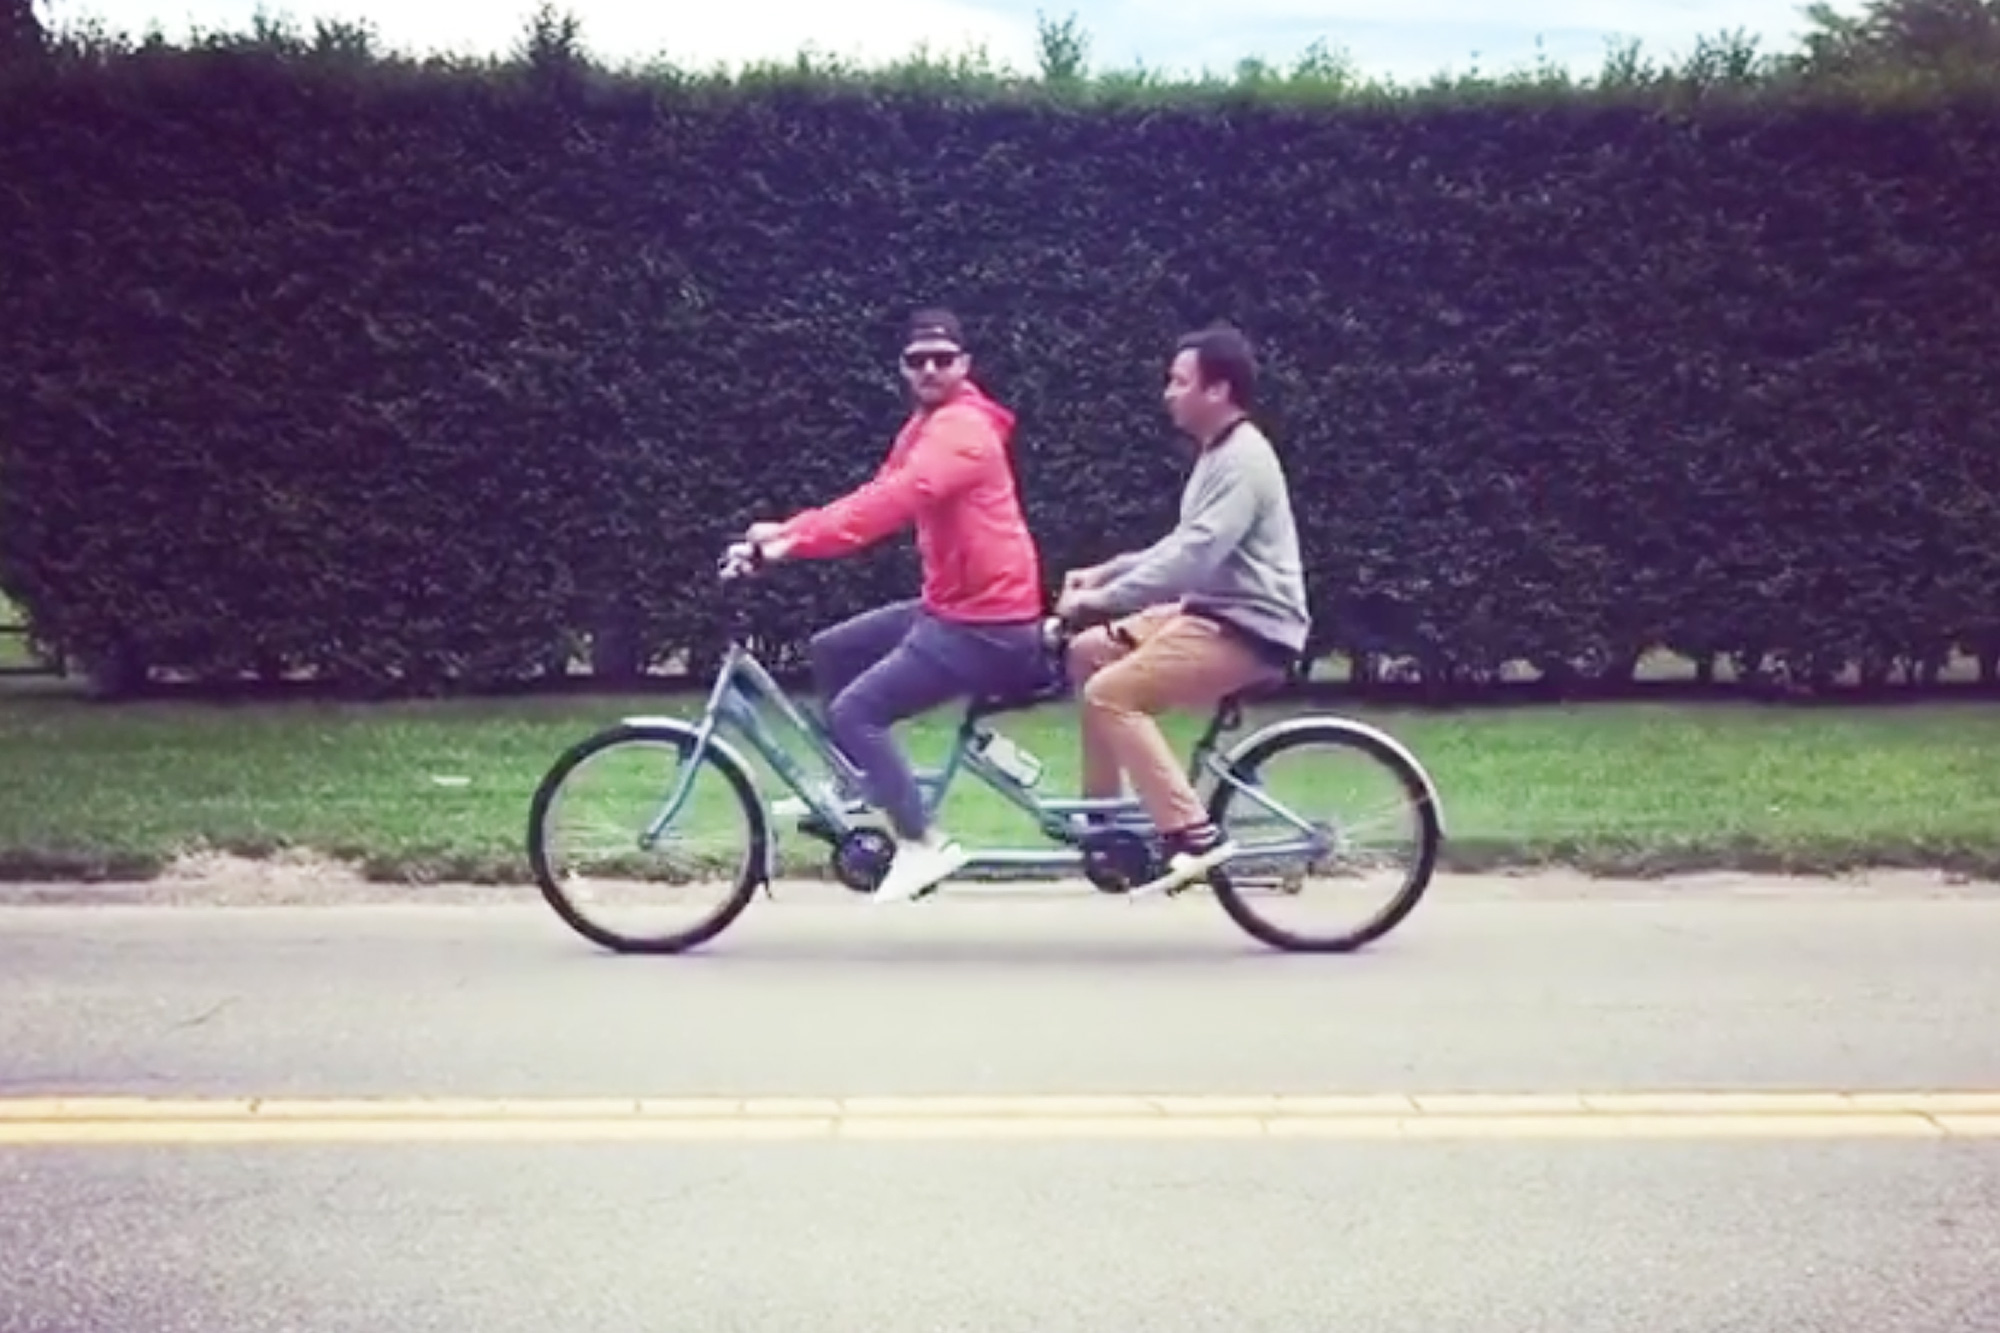 When Justin Timberlake & Jimmy Fallon Rode a Tandem Bike in the Hamptons